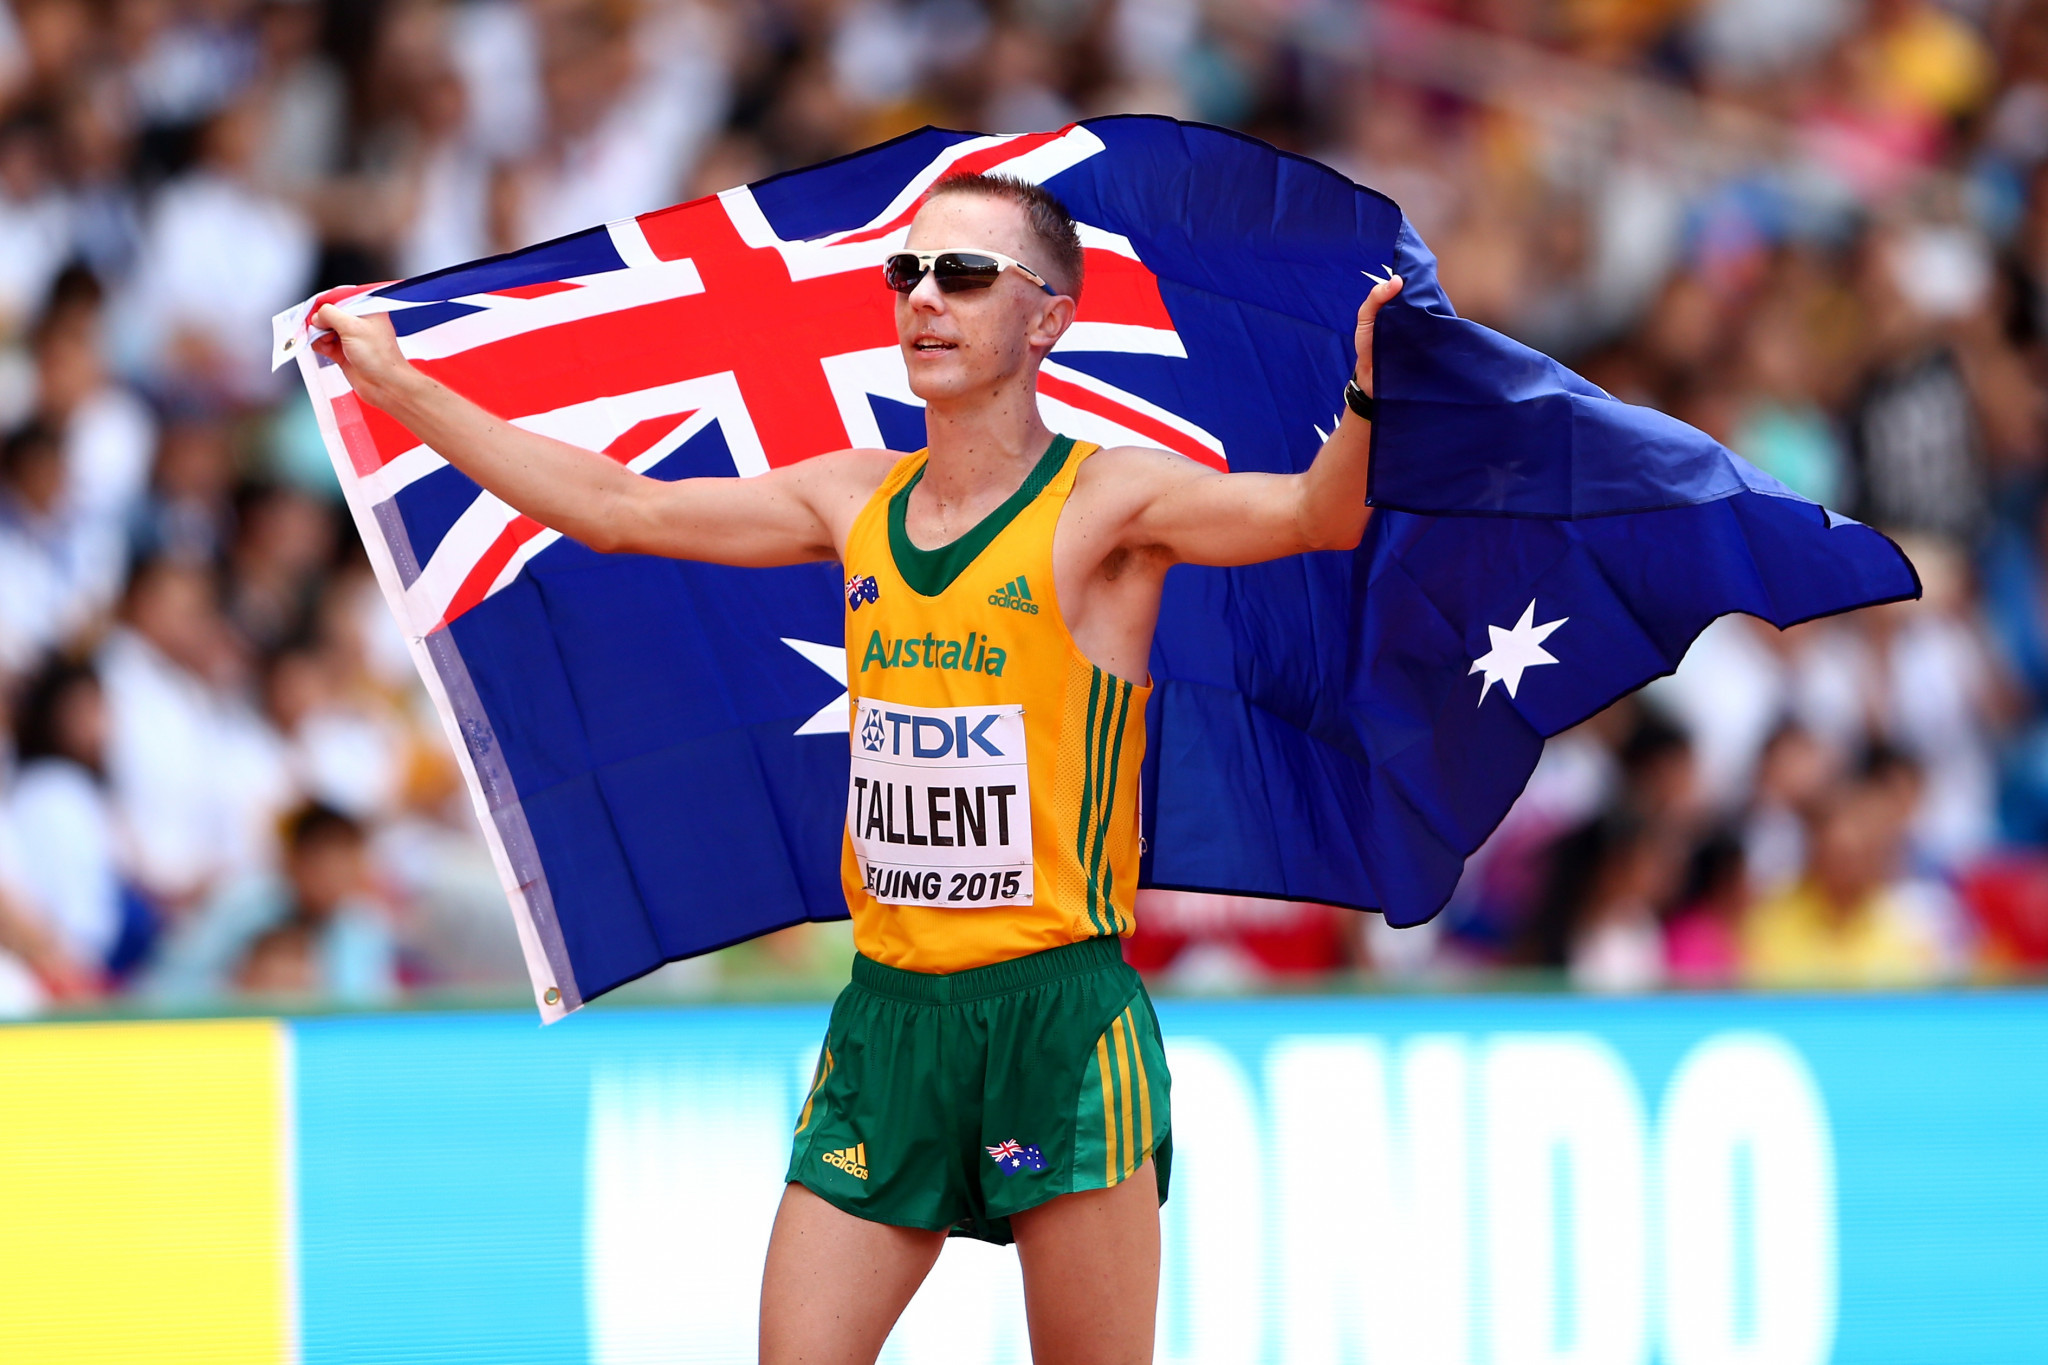 Tallent to miss chance of medal at fourth consecutive Olympics at Tokyo 2020 after injury-enforced retirement